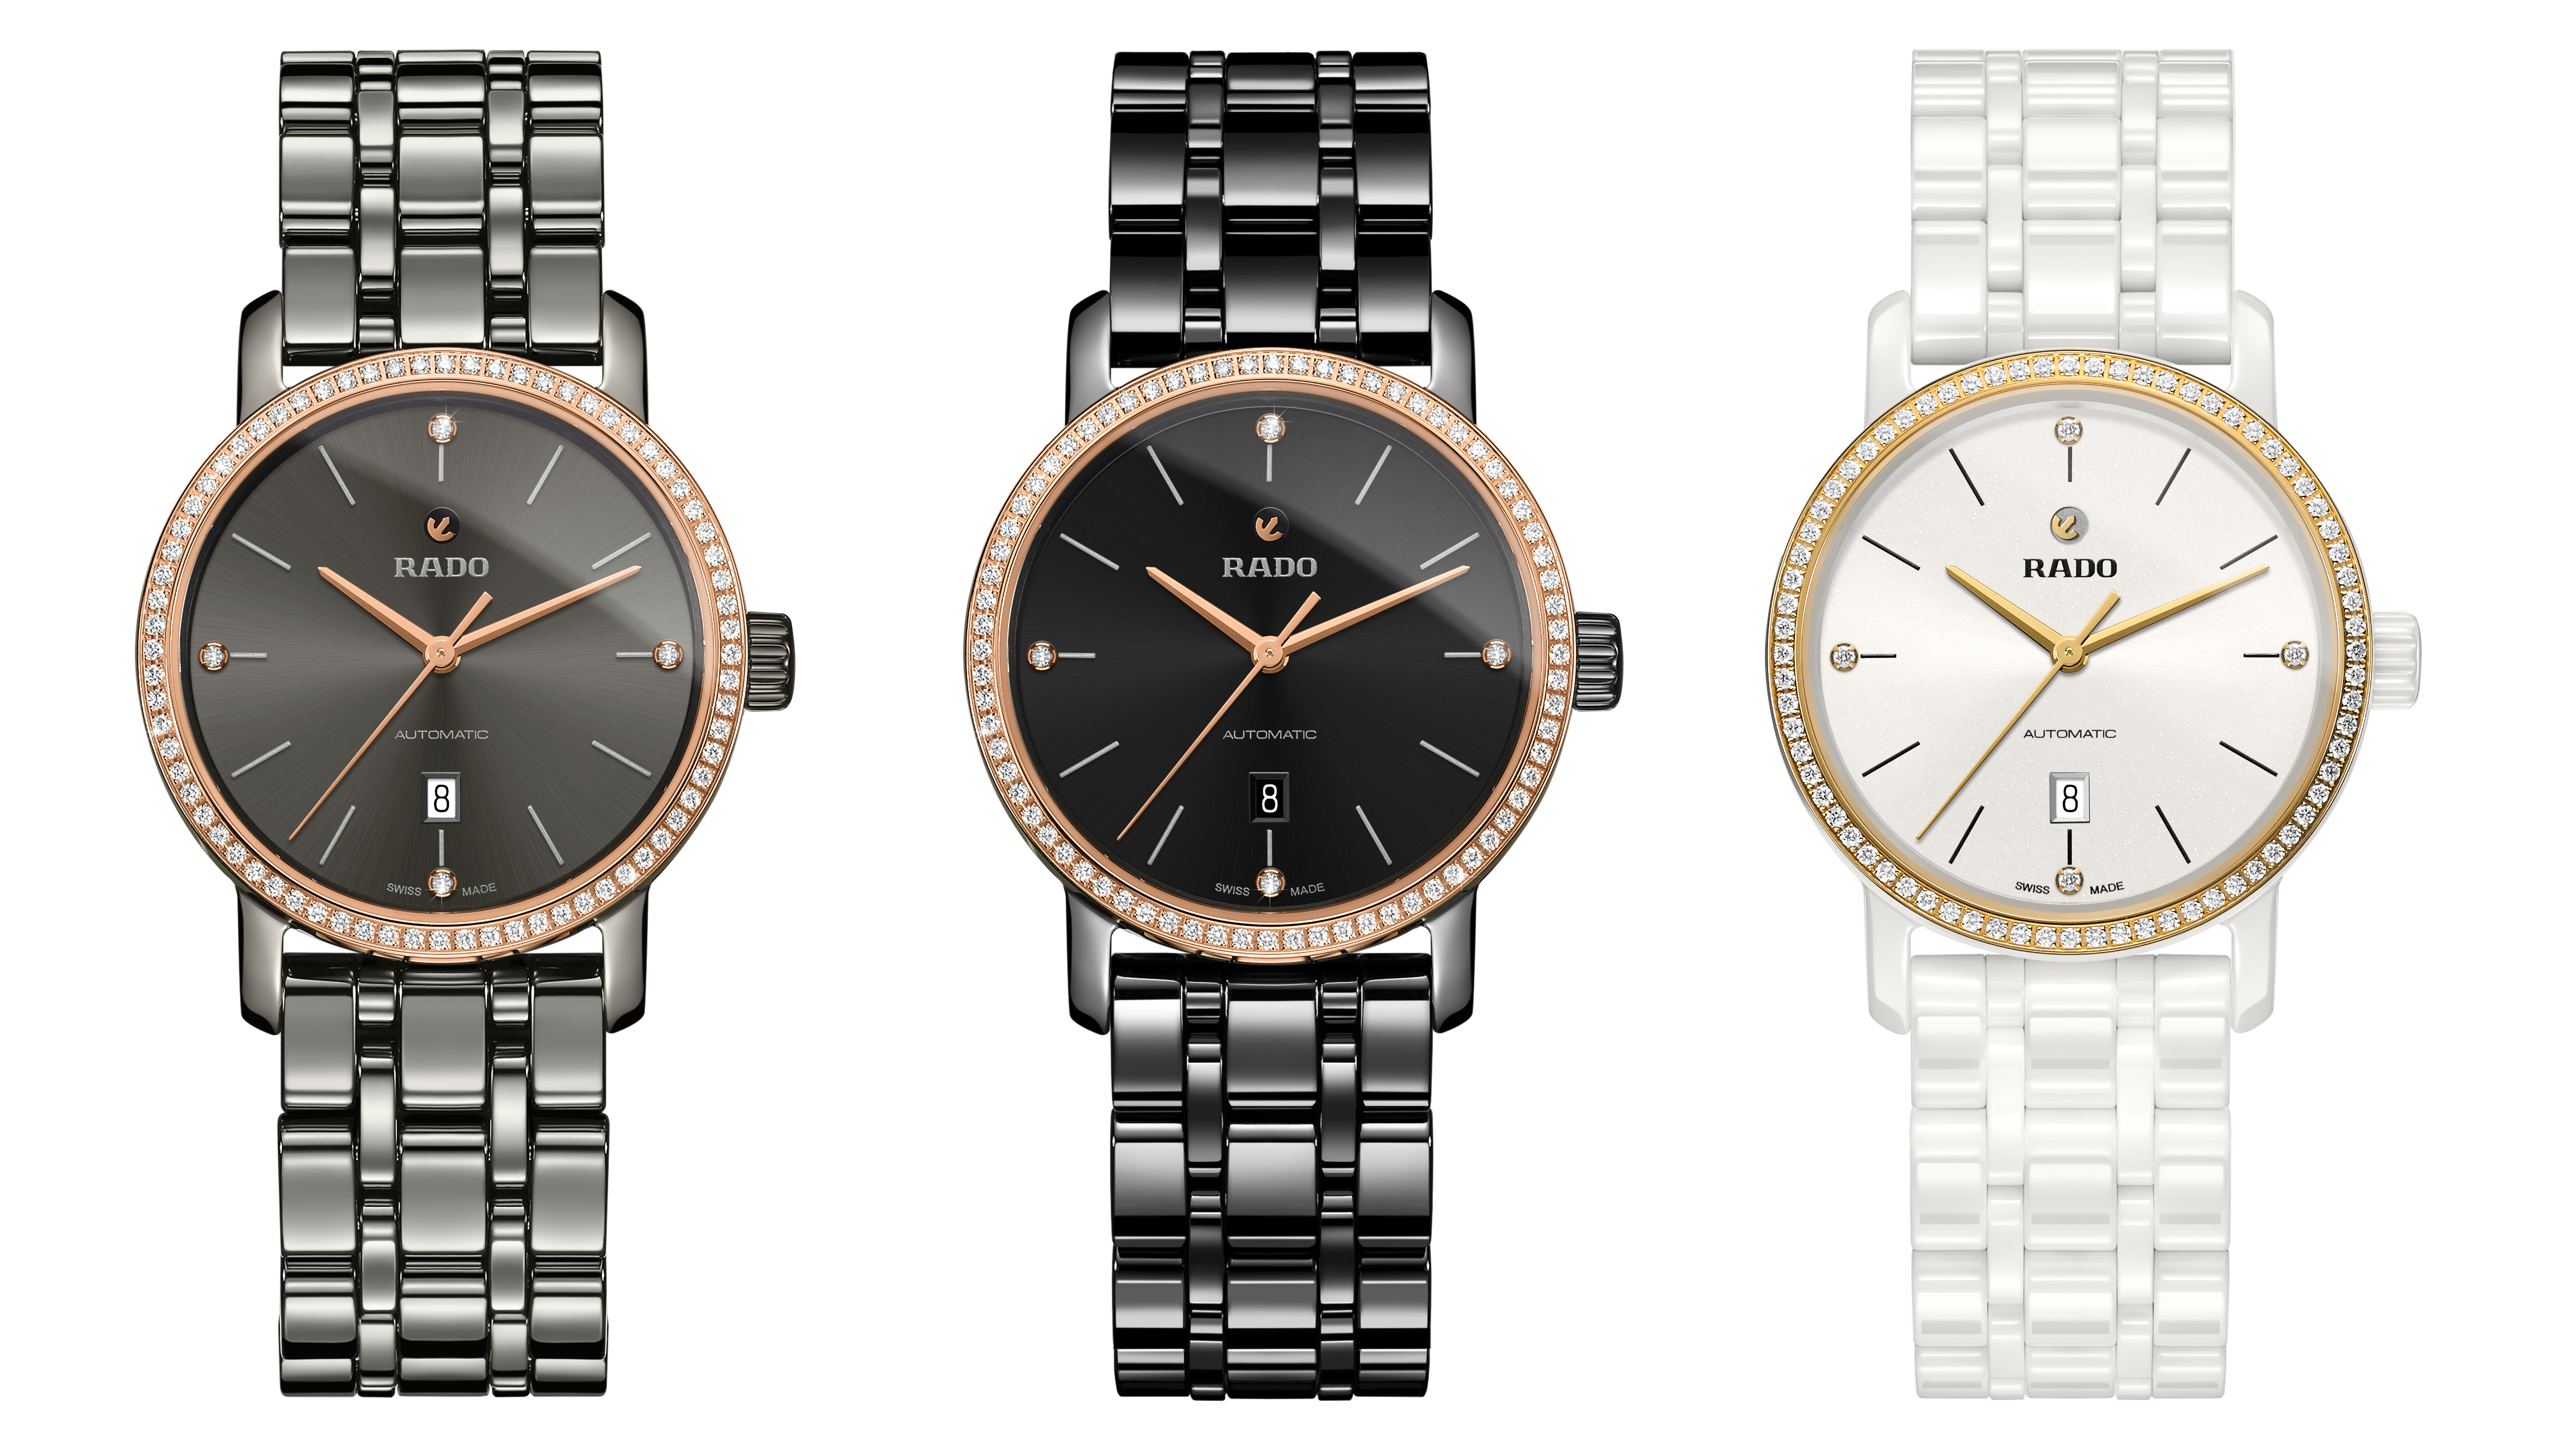 the rado diamaster diamonds range watchesindex. Black Bedroom Furniture Sets. Home Design Ideas